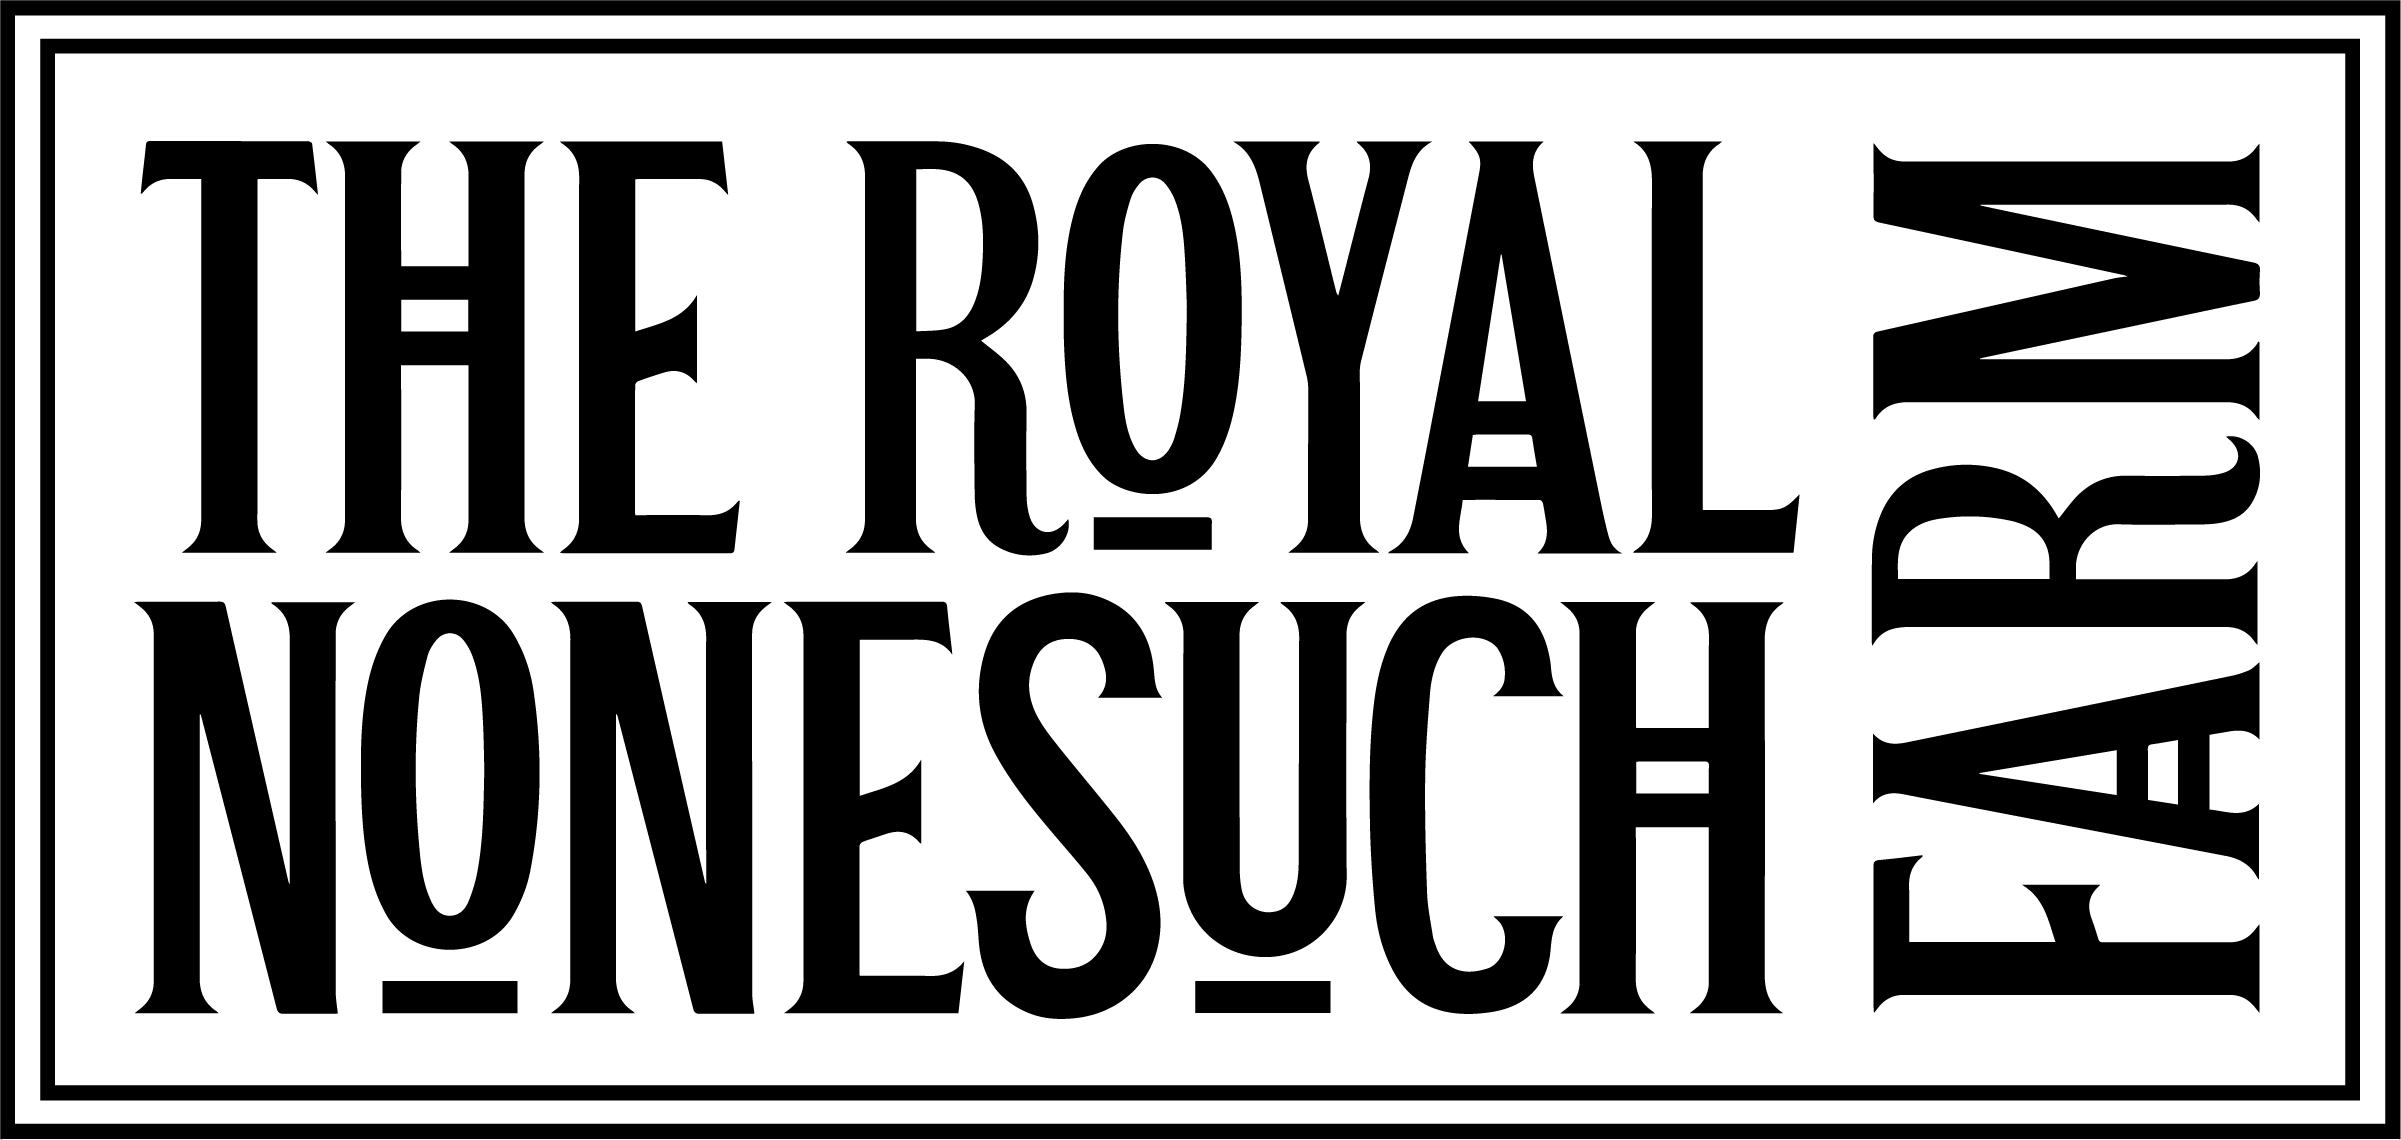 royal nonesuch@4x.png